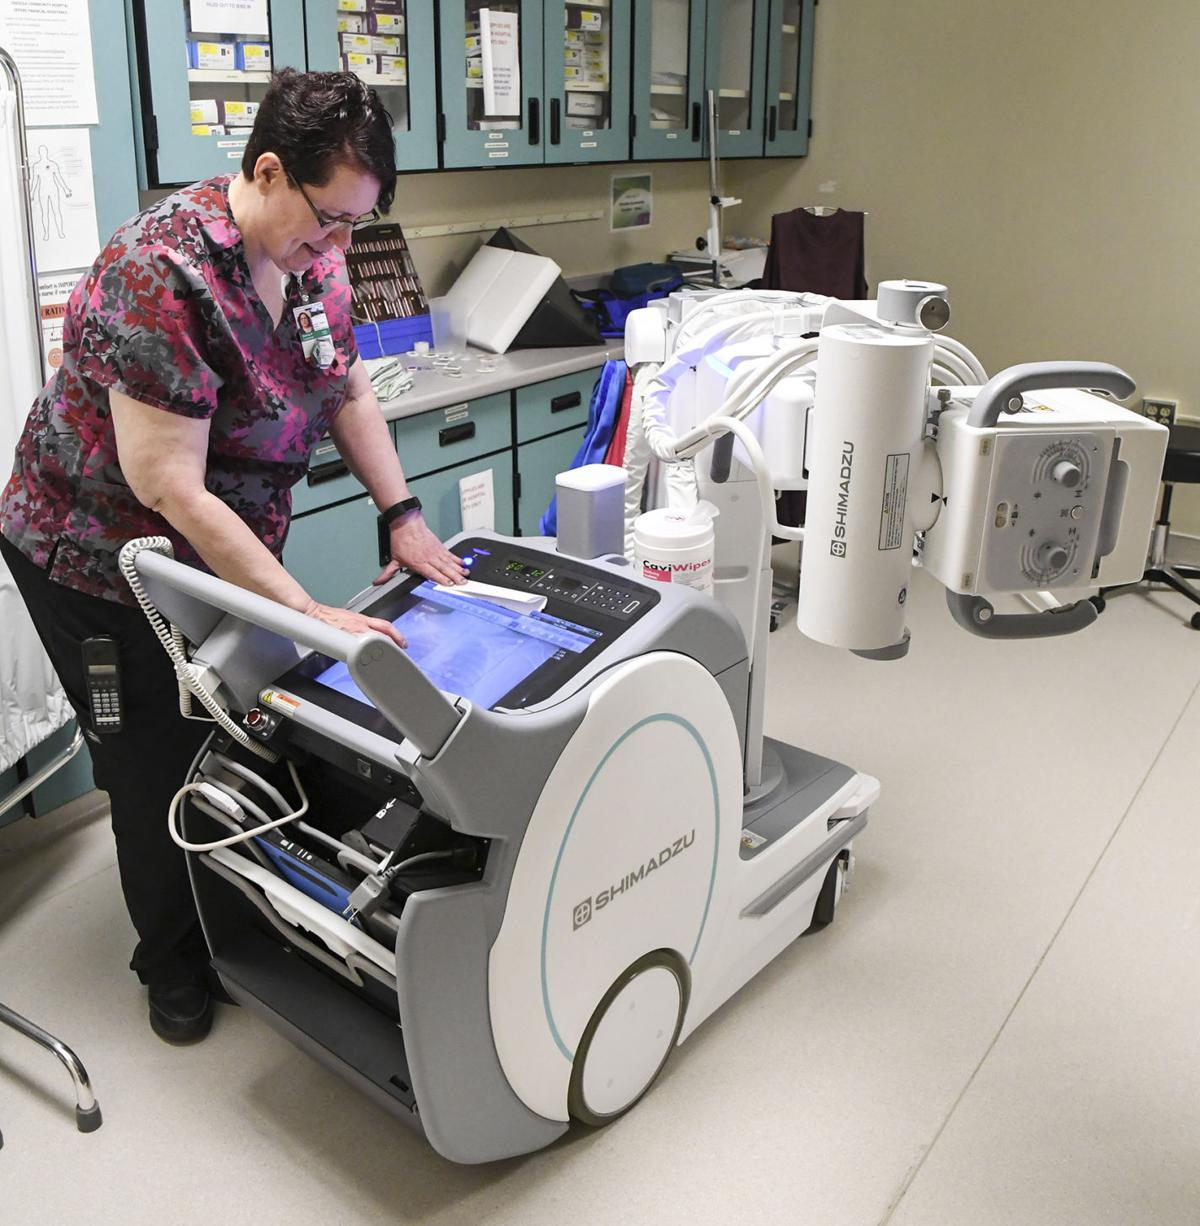 N'West Iowa hospitals get new X-ray systems